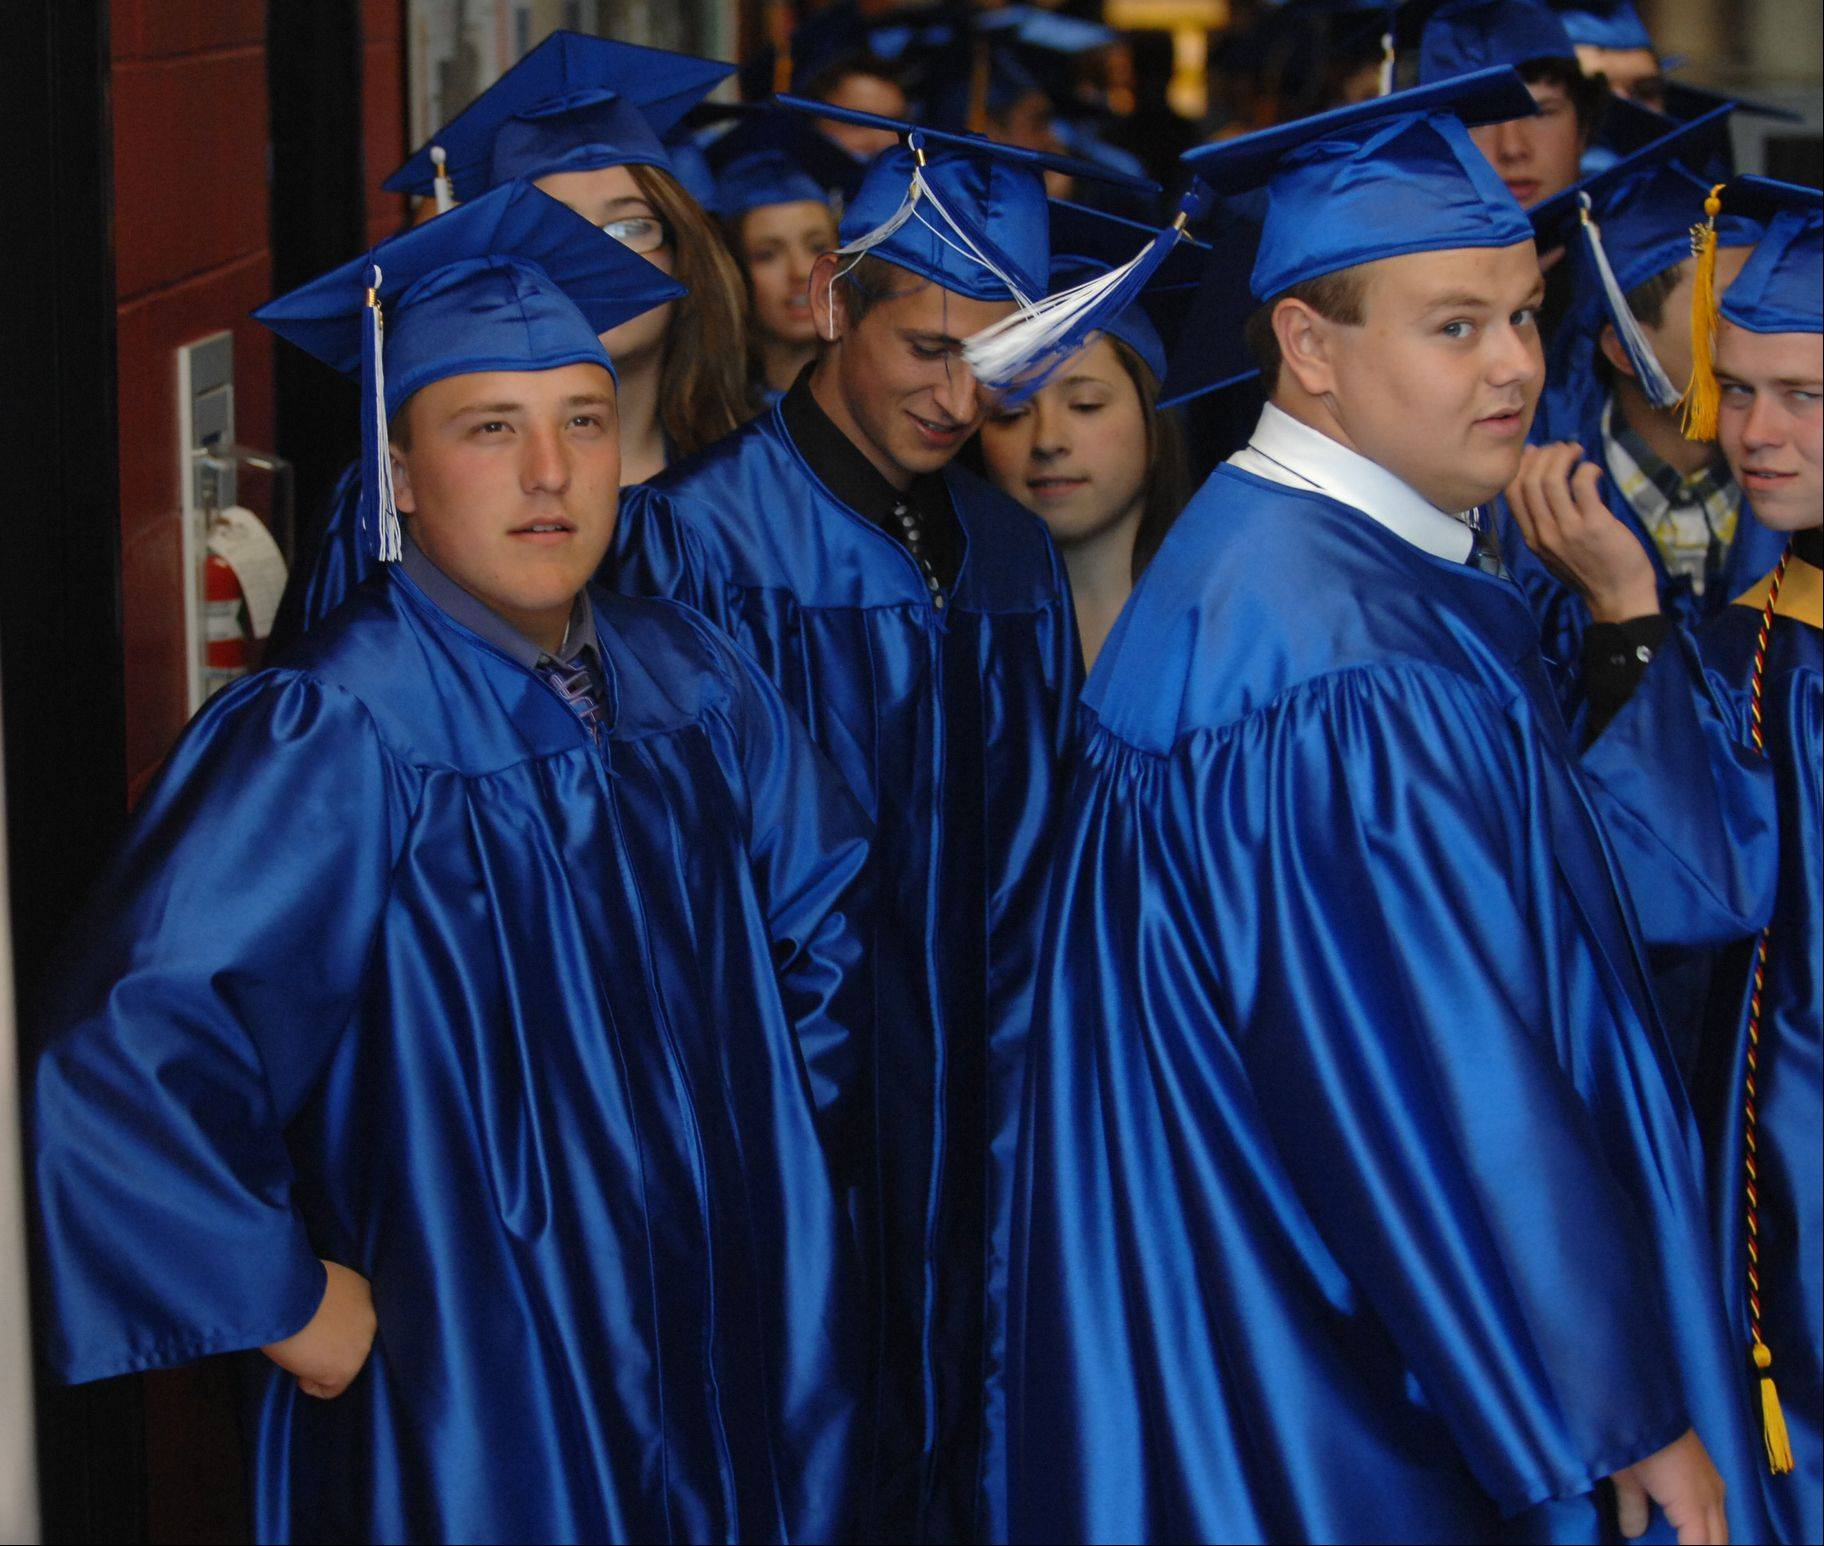 Images from the Burlington Central High School graduation ceremony Friday night, June 1, 2012 at Elgin Community College.